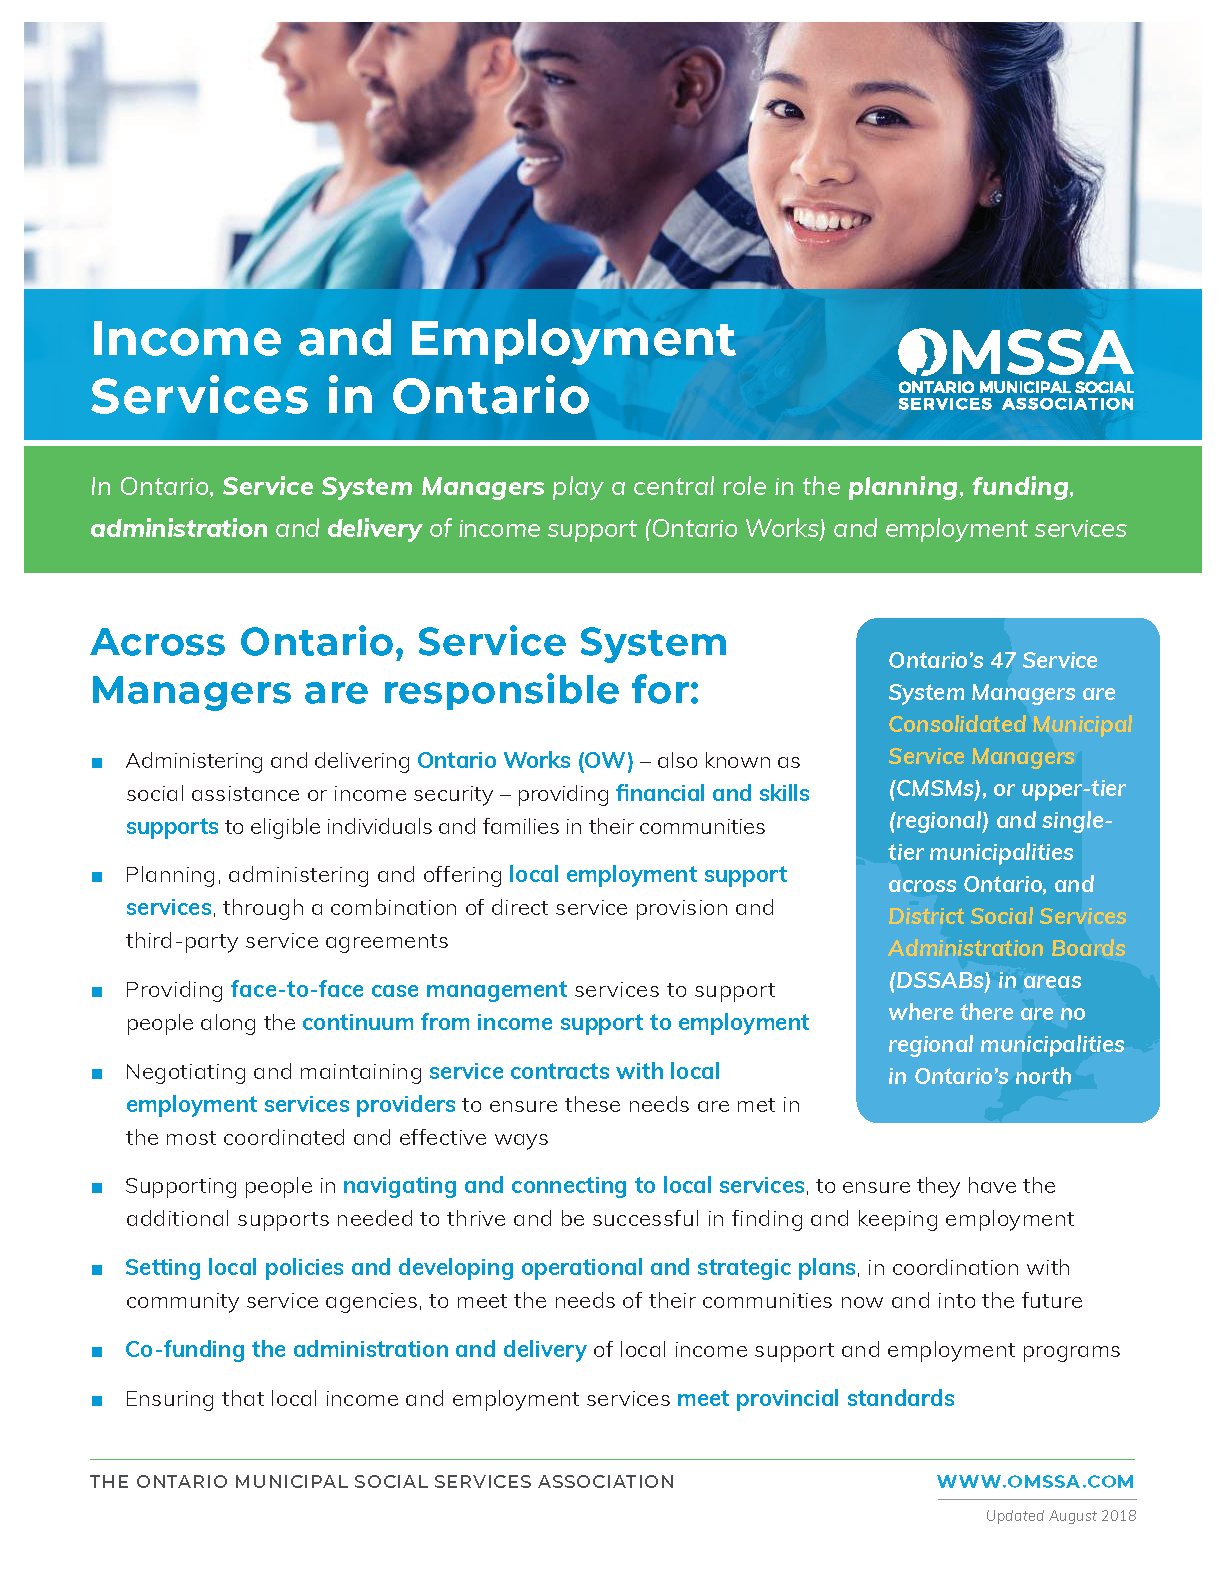 Income and Employment Services in Ontario